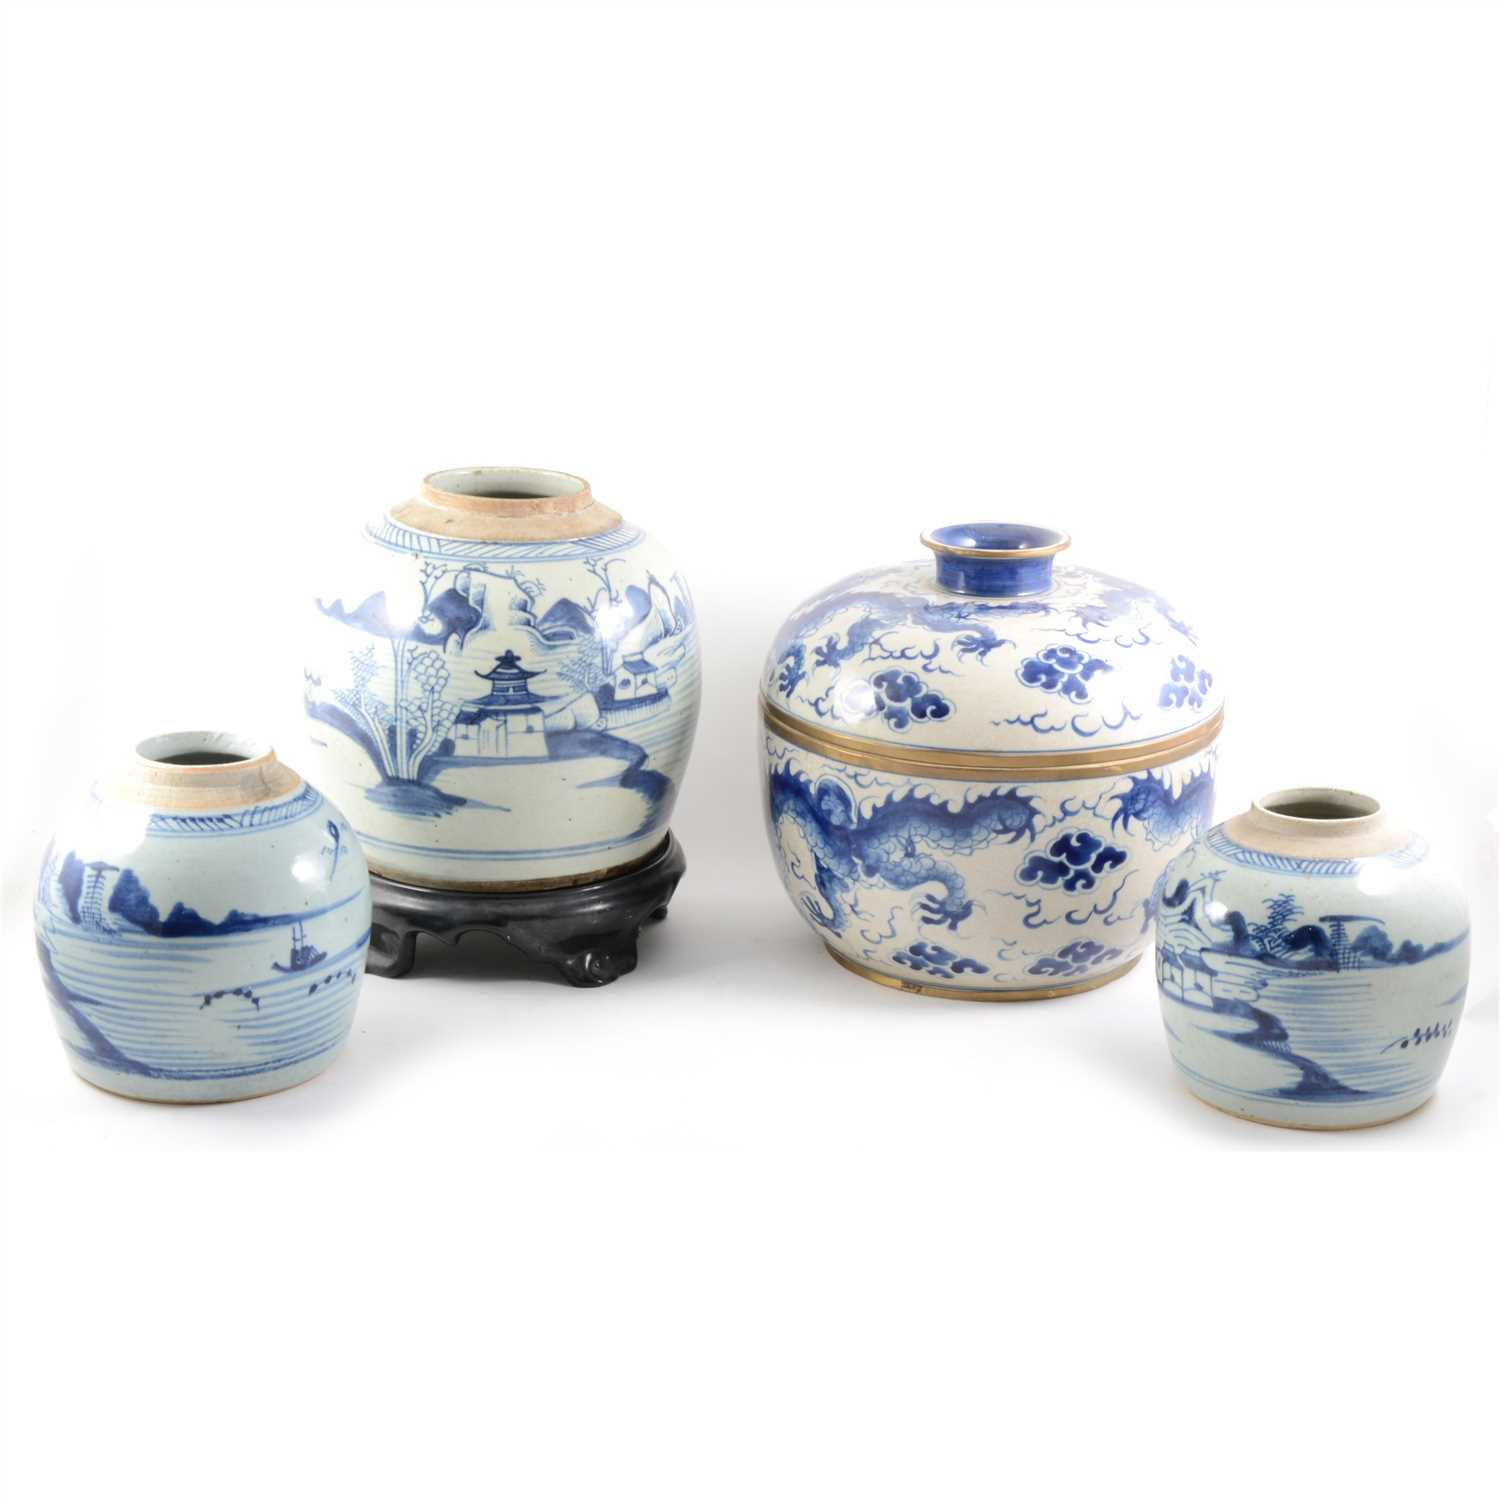 Lot 19-A large Chinese blue and white ginger jar, etc